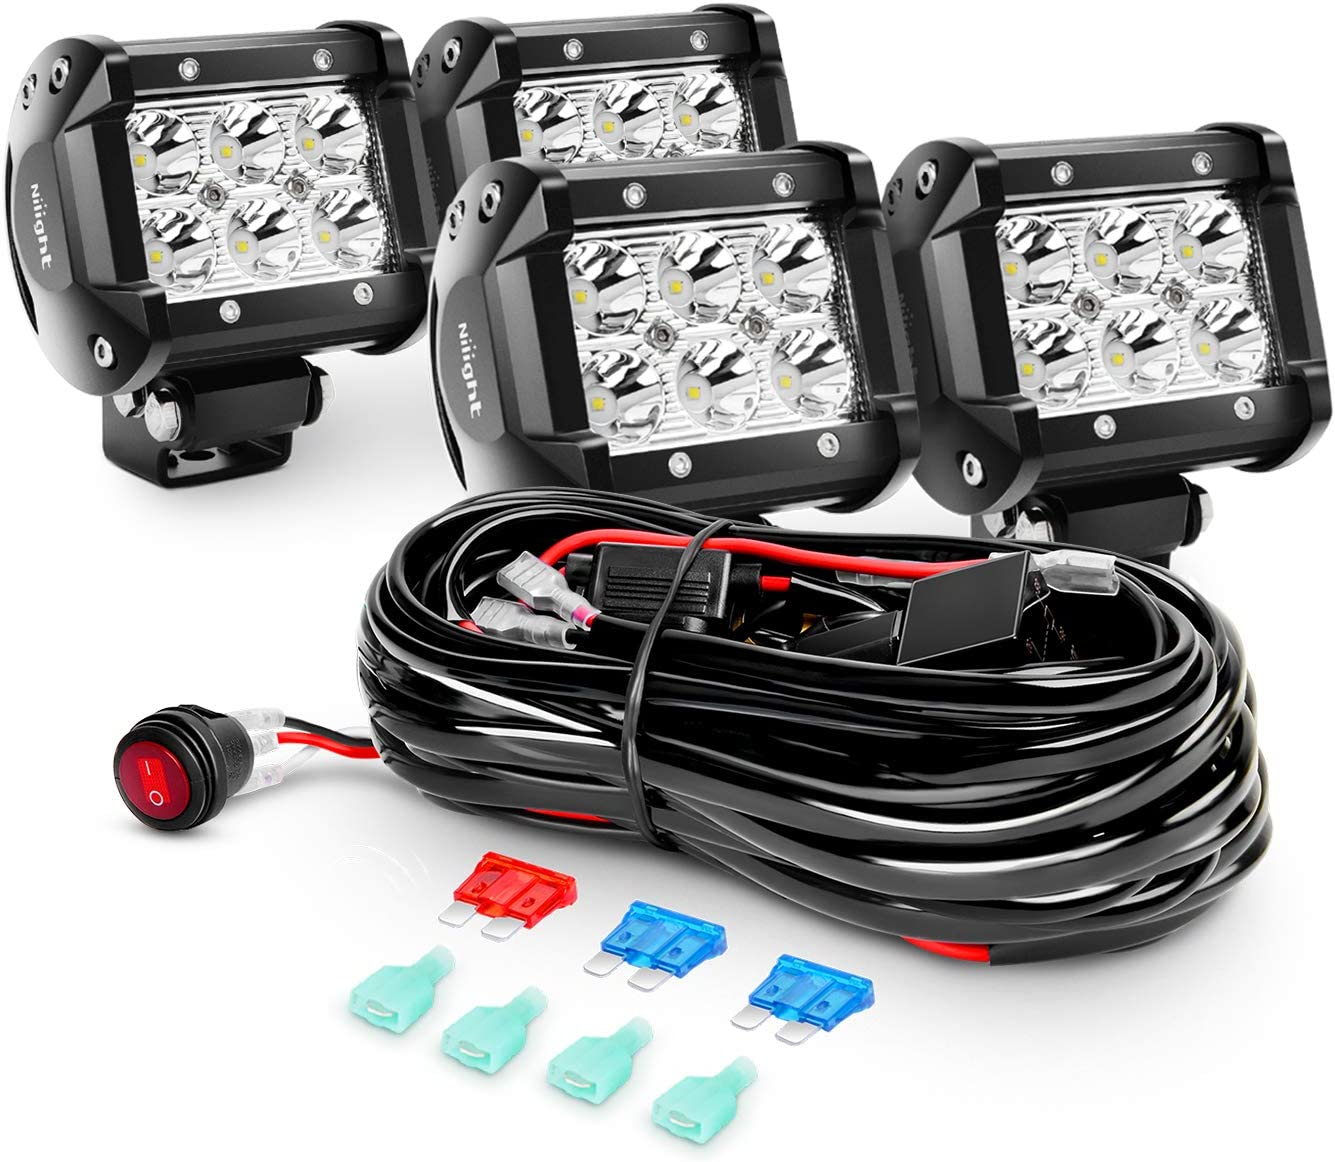 Amazon.com: Nilight 4PCS 4 Inch 18W Spot Led Light Bars LED Work Lights Led  Fog Lights Off Road Driving Lights With Off Road Wiring Harness, 2 Years  Warranty (ZH036): AutomotiveAmazon.com